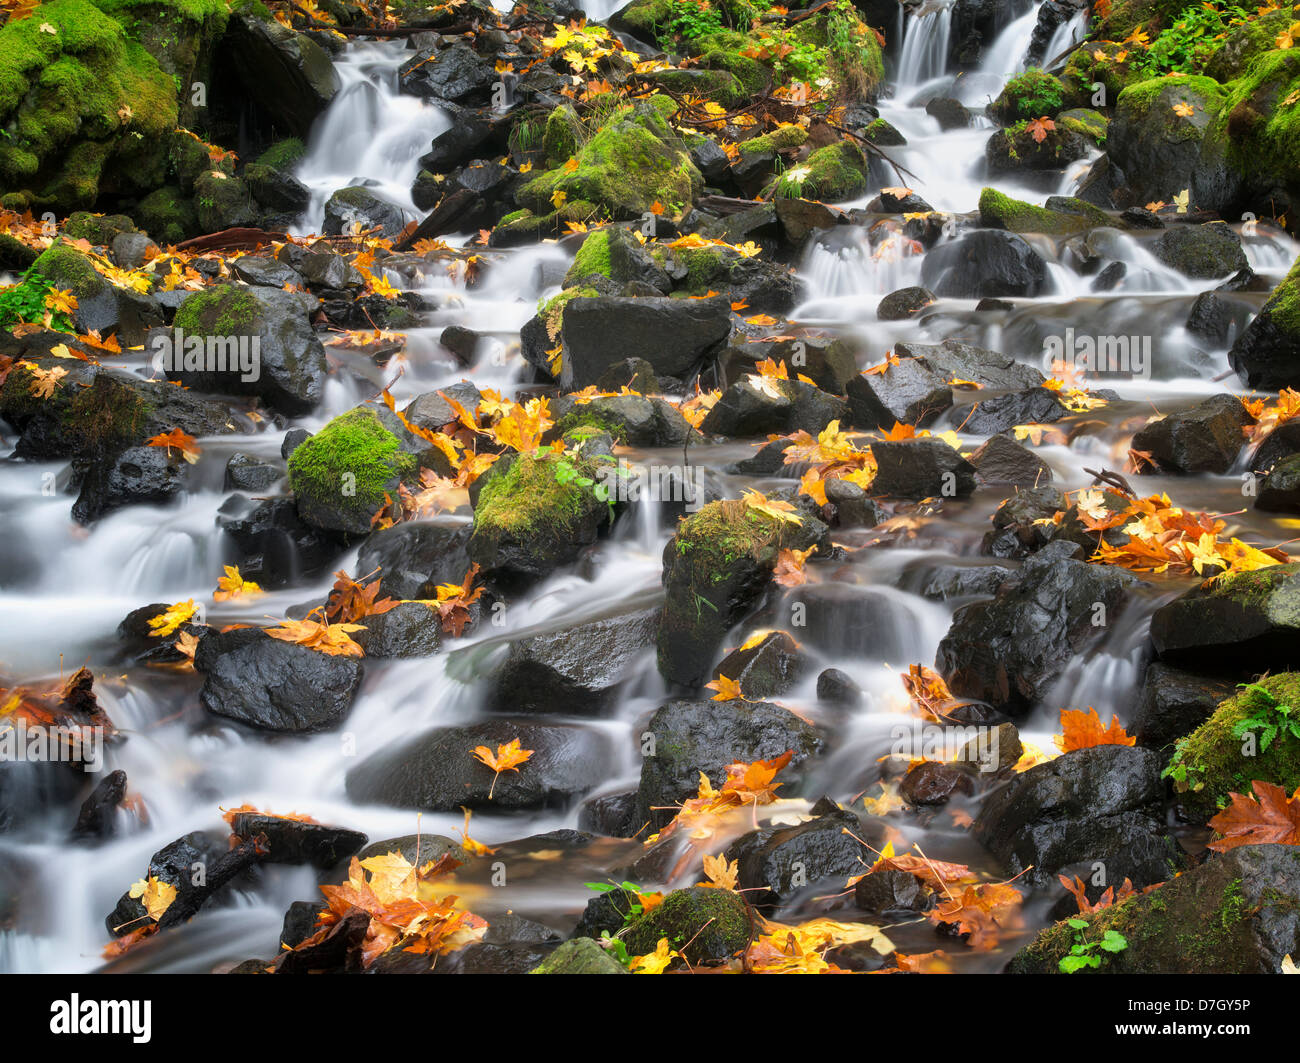 Starvation Creek with fall colors.Columbia River Gorge National Scenic Area, Oregon - Stock Image